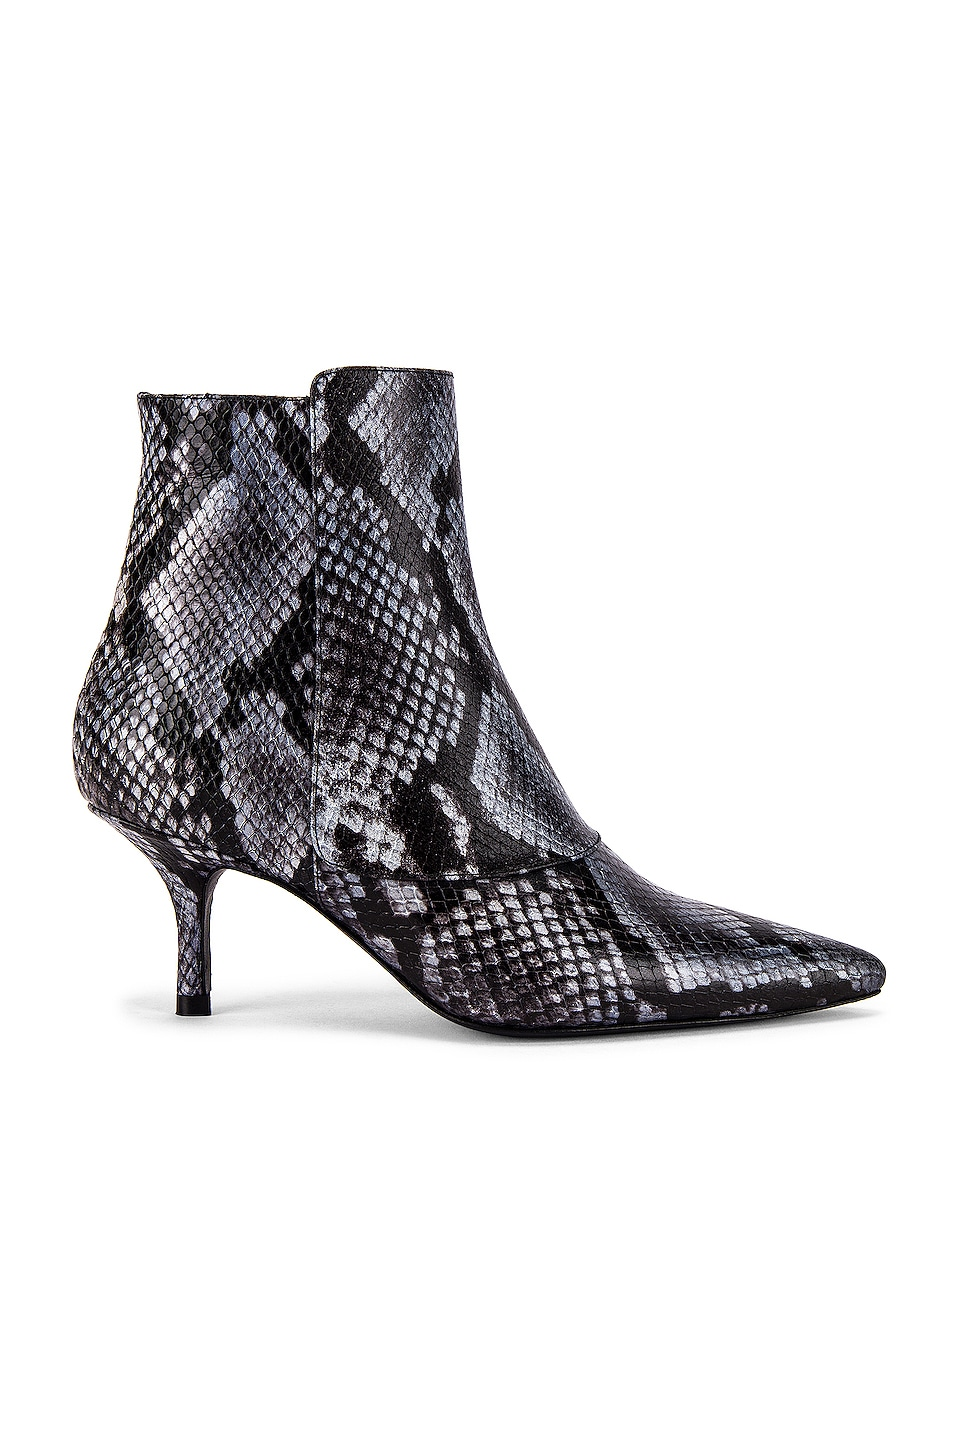 ANINE BING Ava Bootie in Cloudy Blue Python